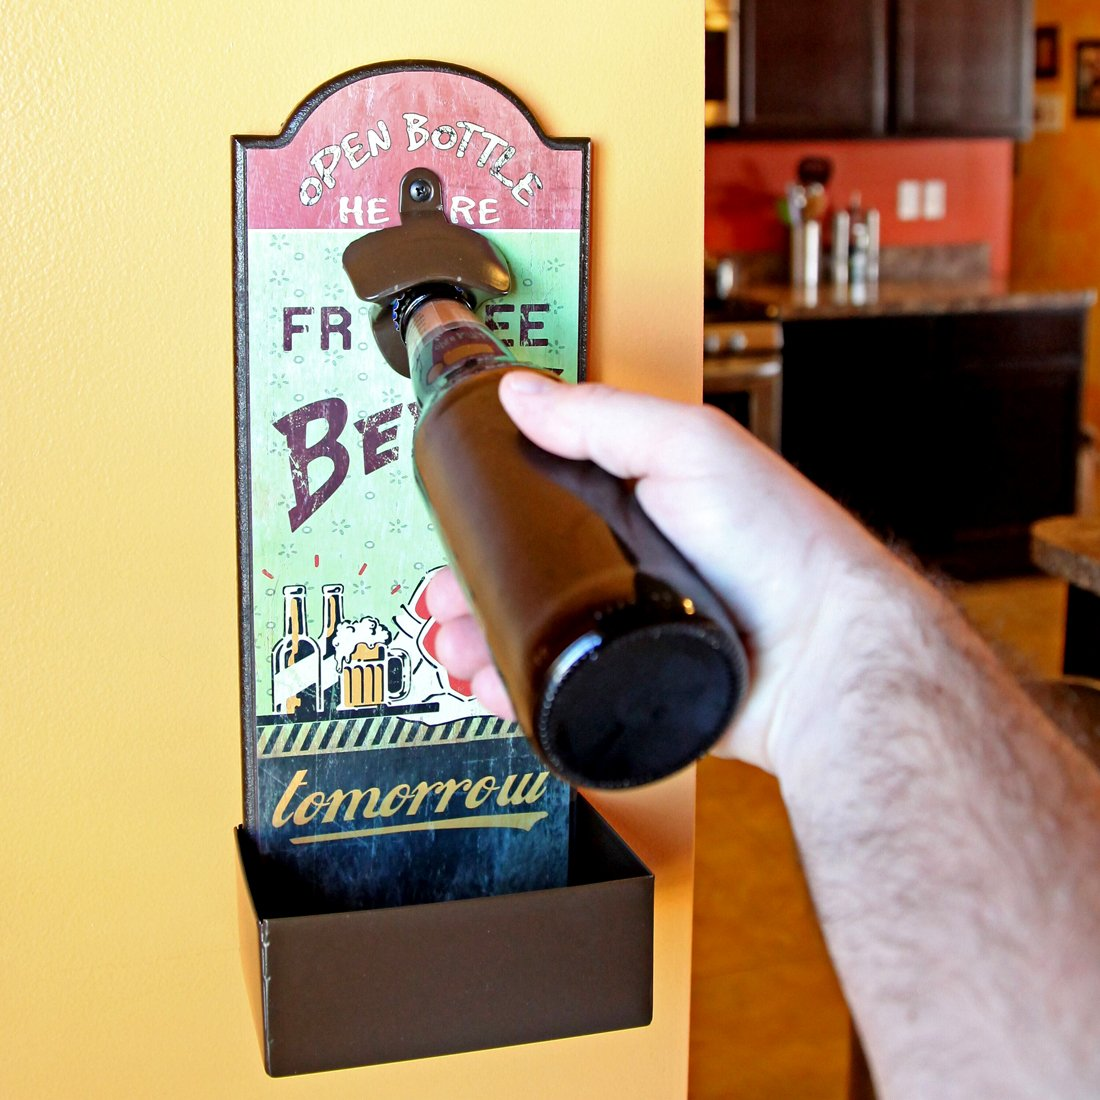 Lily's Home Vintage Humorous Beer Bottle Opener With Cap Catcher, Father's Day Gift 1